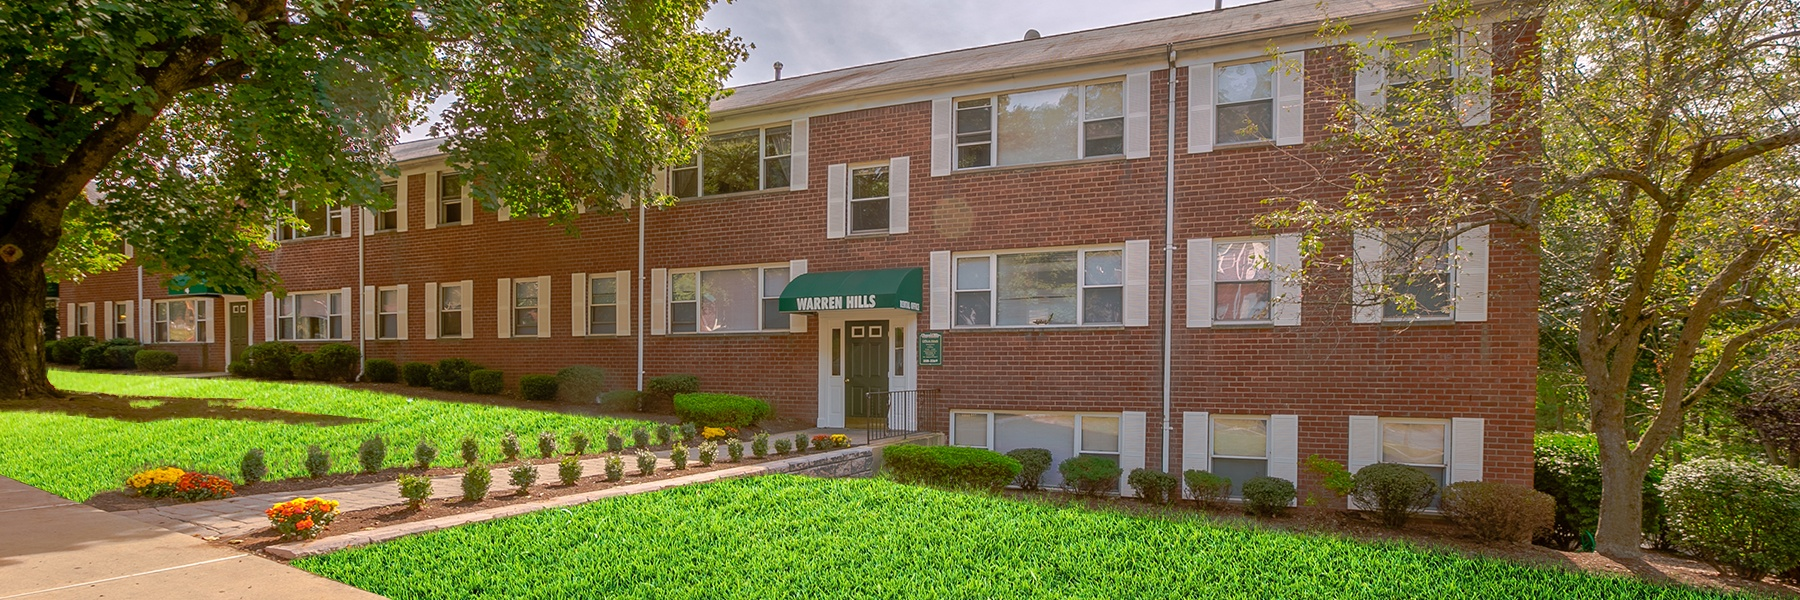 Warren Hills Apartments